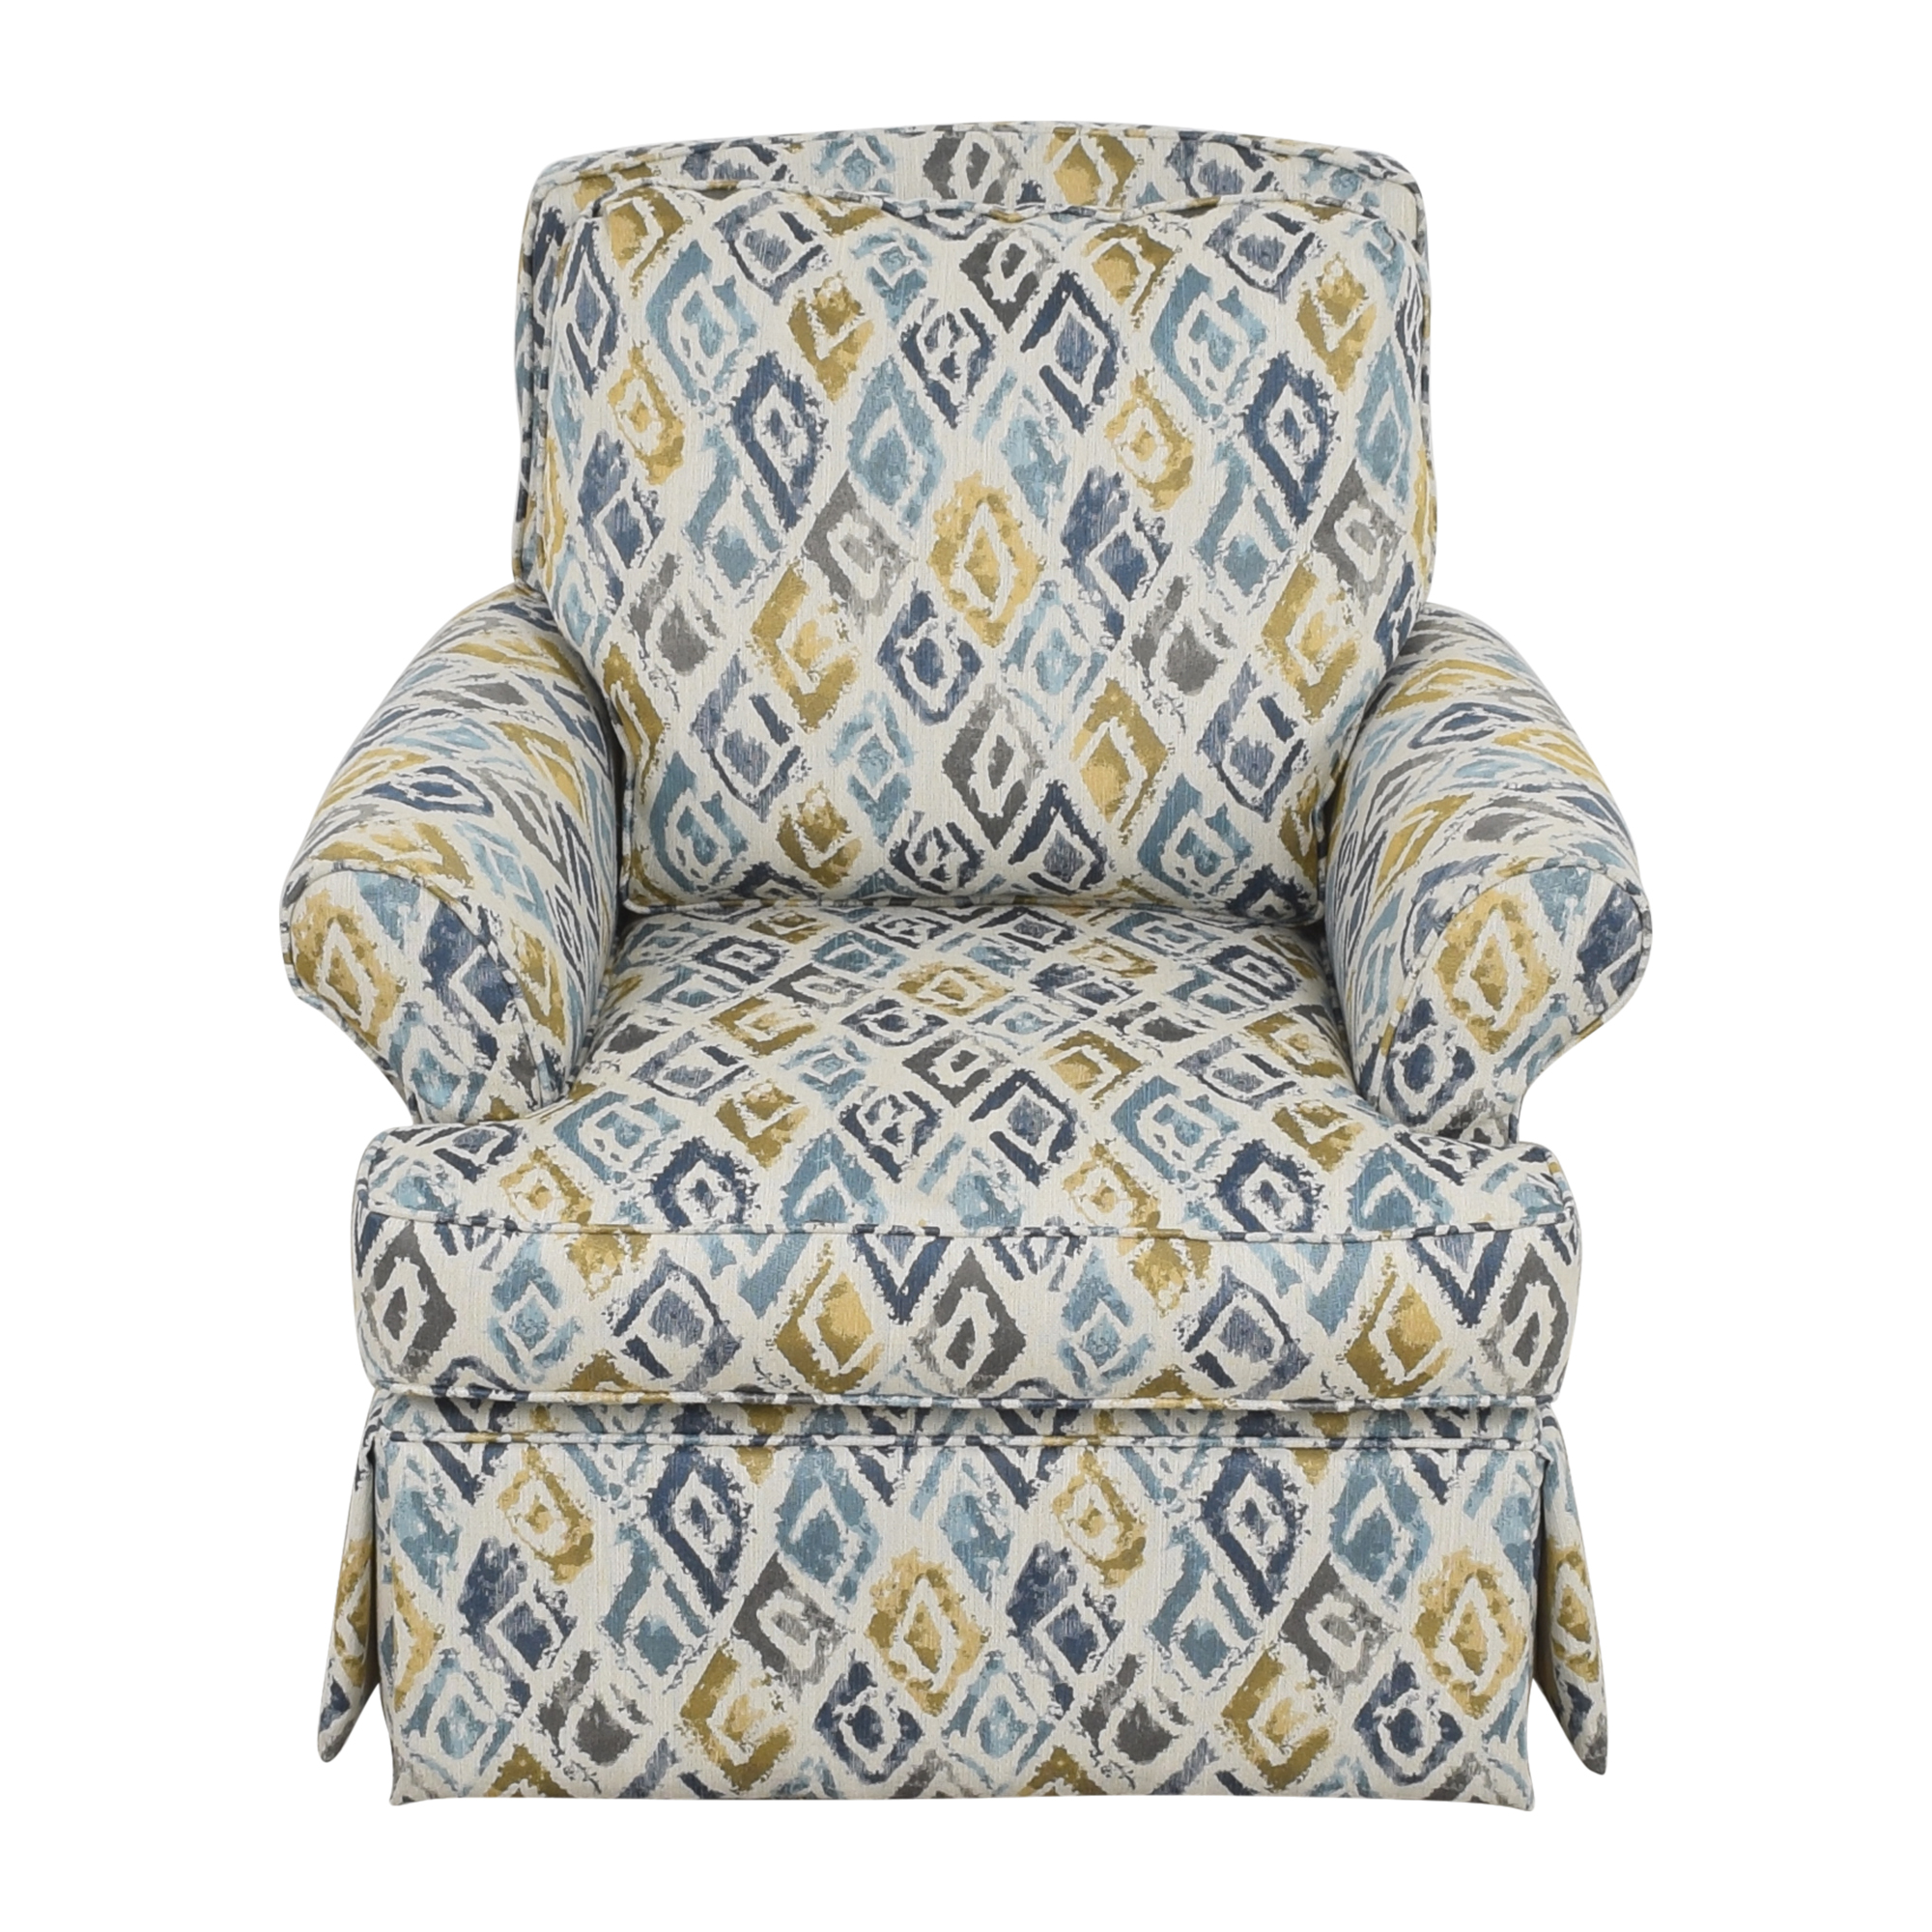 Raymour & Flanigan Raymour & Flanigan Swivel Accent Chair for sale